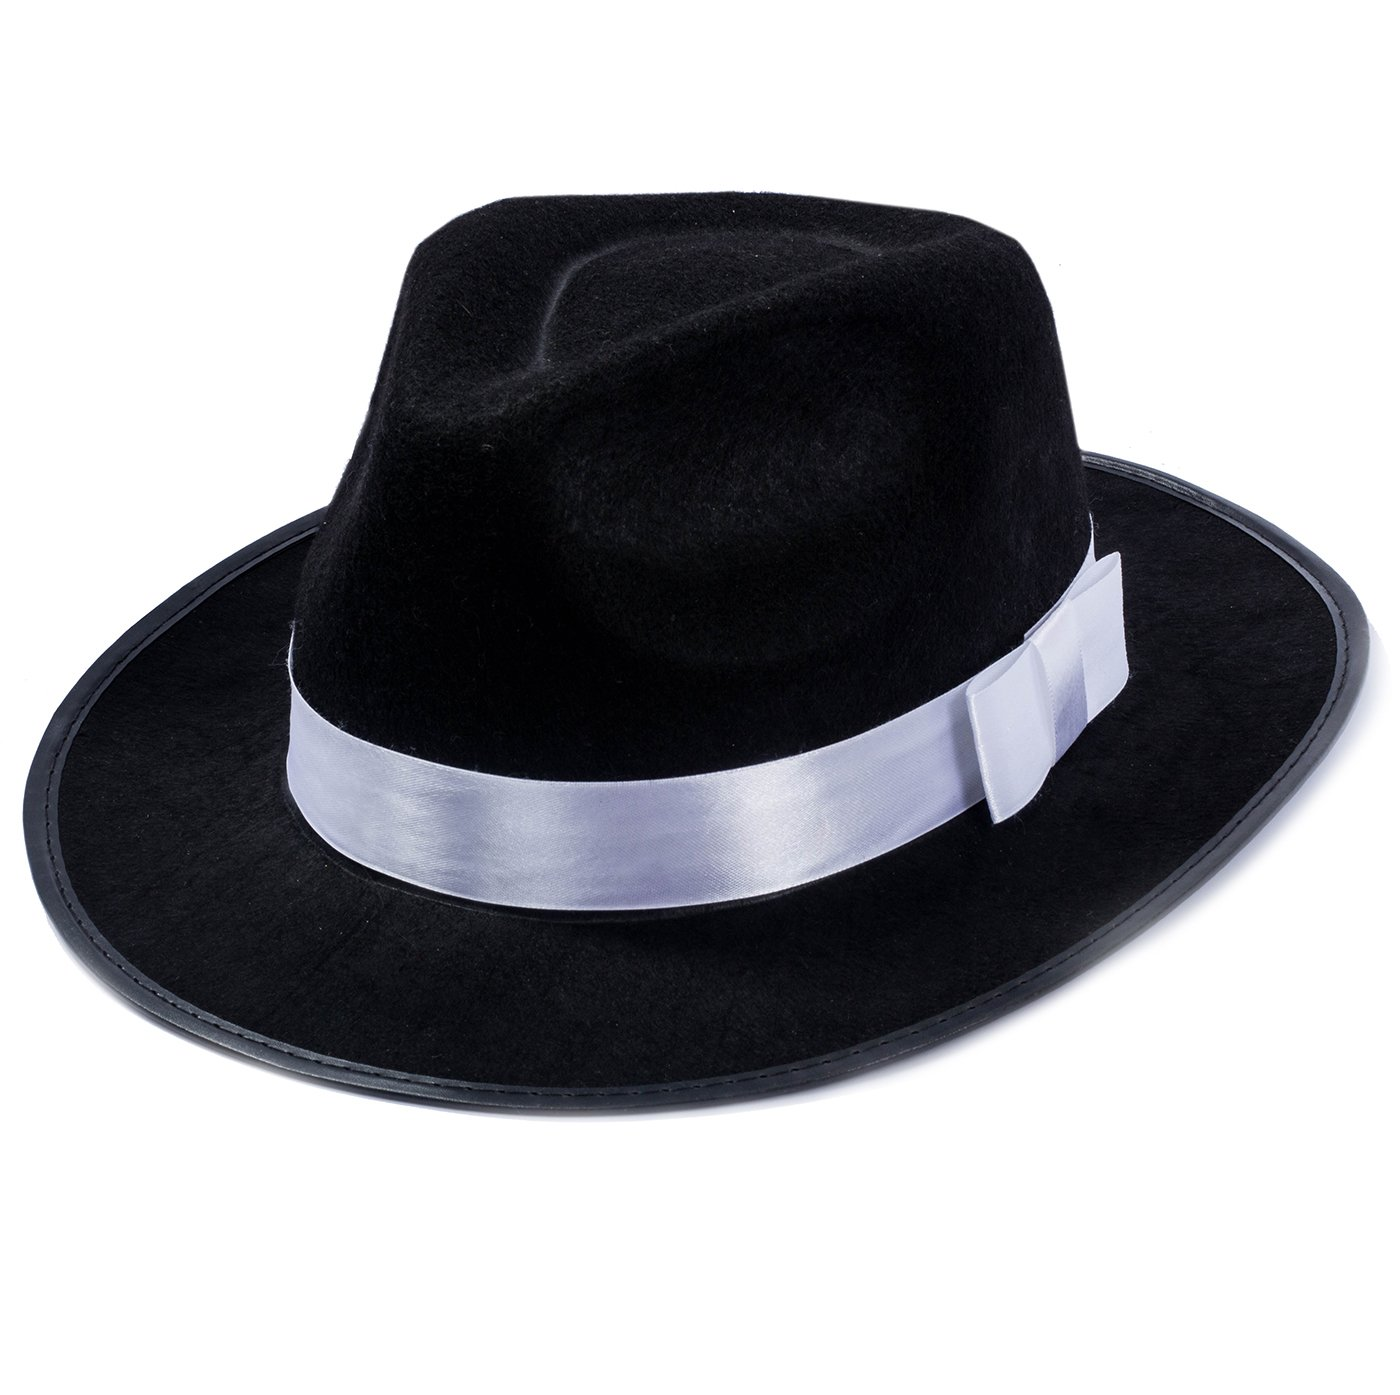 Funny Party Hats Black Fedora Gangster Hat Costume Accessory am306AZ12